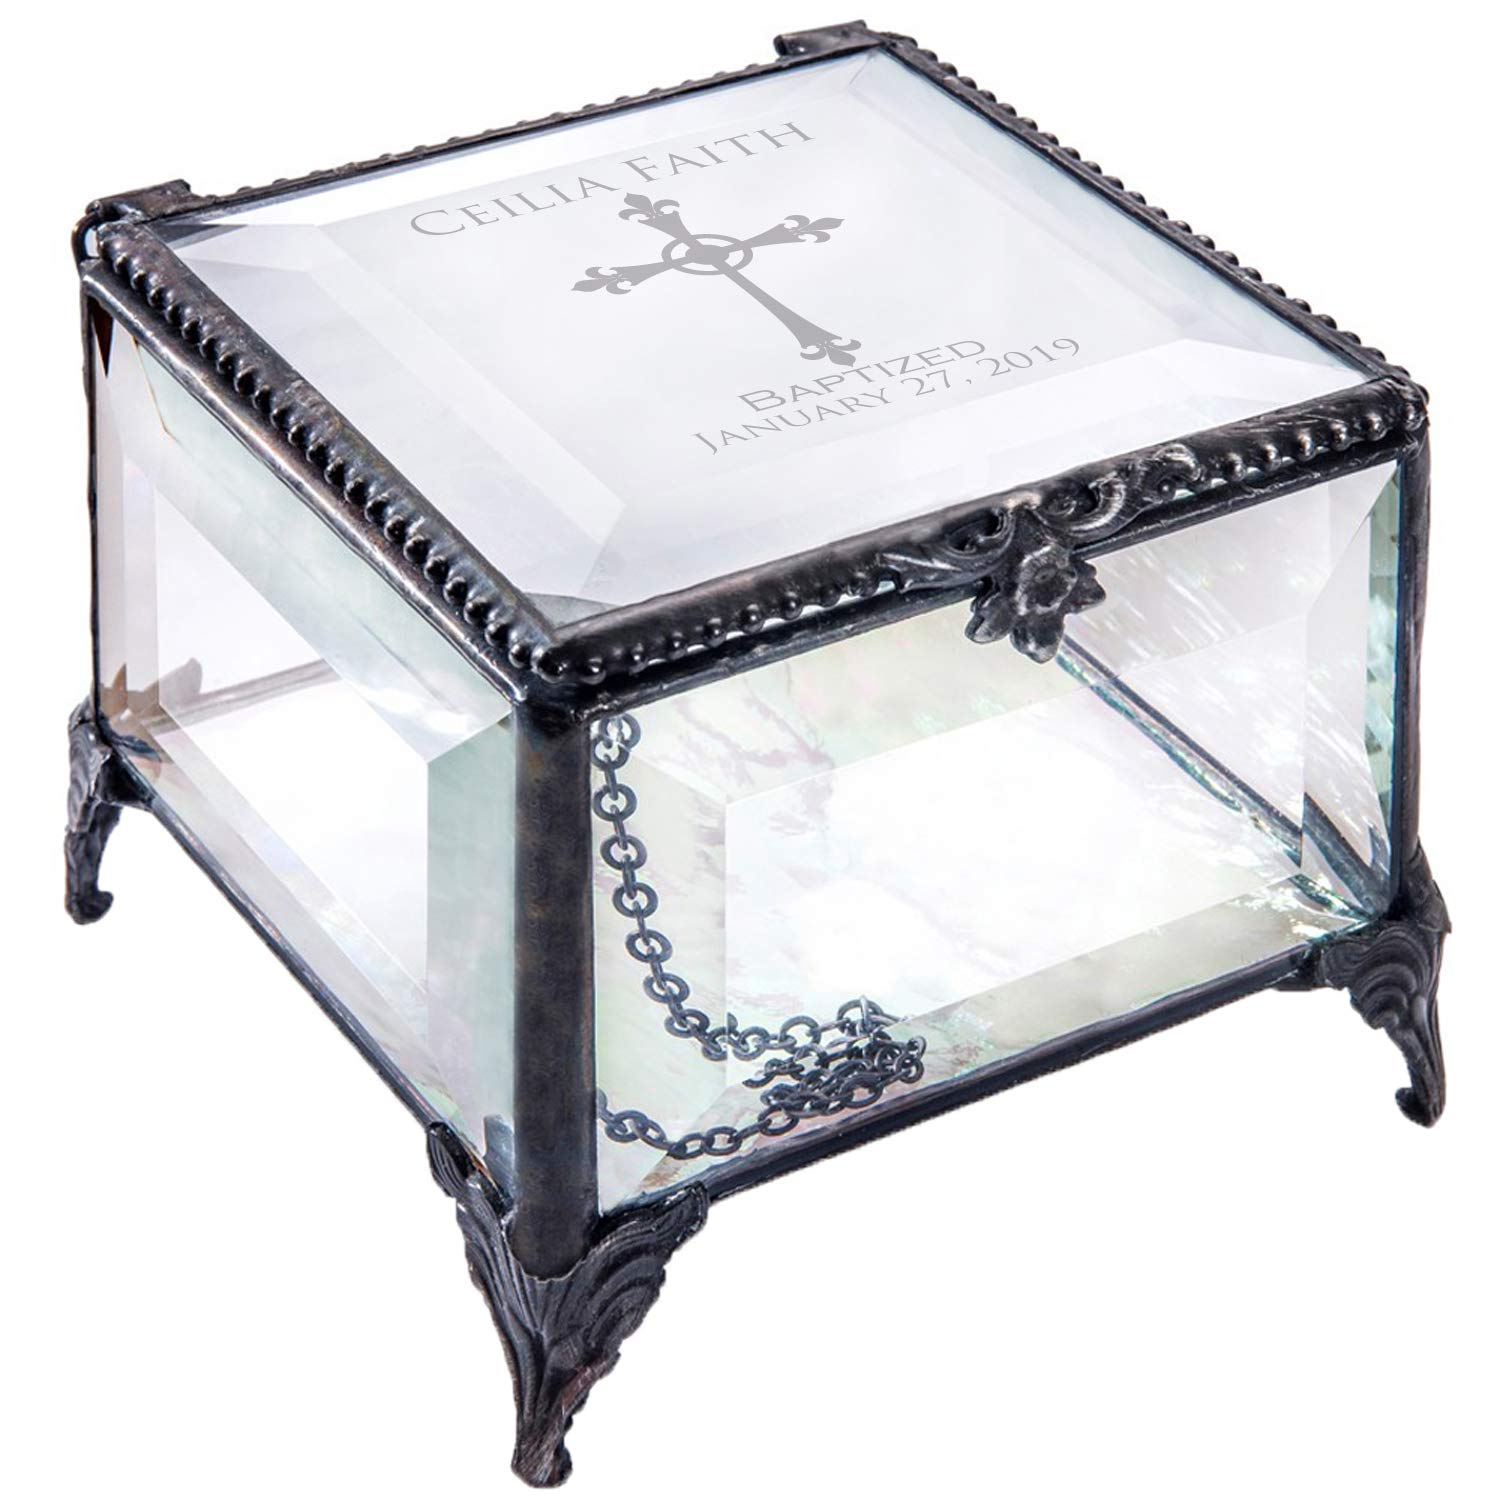 Baptism Gift for Girls Personalized Keepsake Box Clear Beveled Glass Engraved Cross Jewelry Daughter Goddaughter Granddaughter J Devlin Box 326 EB222